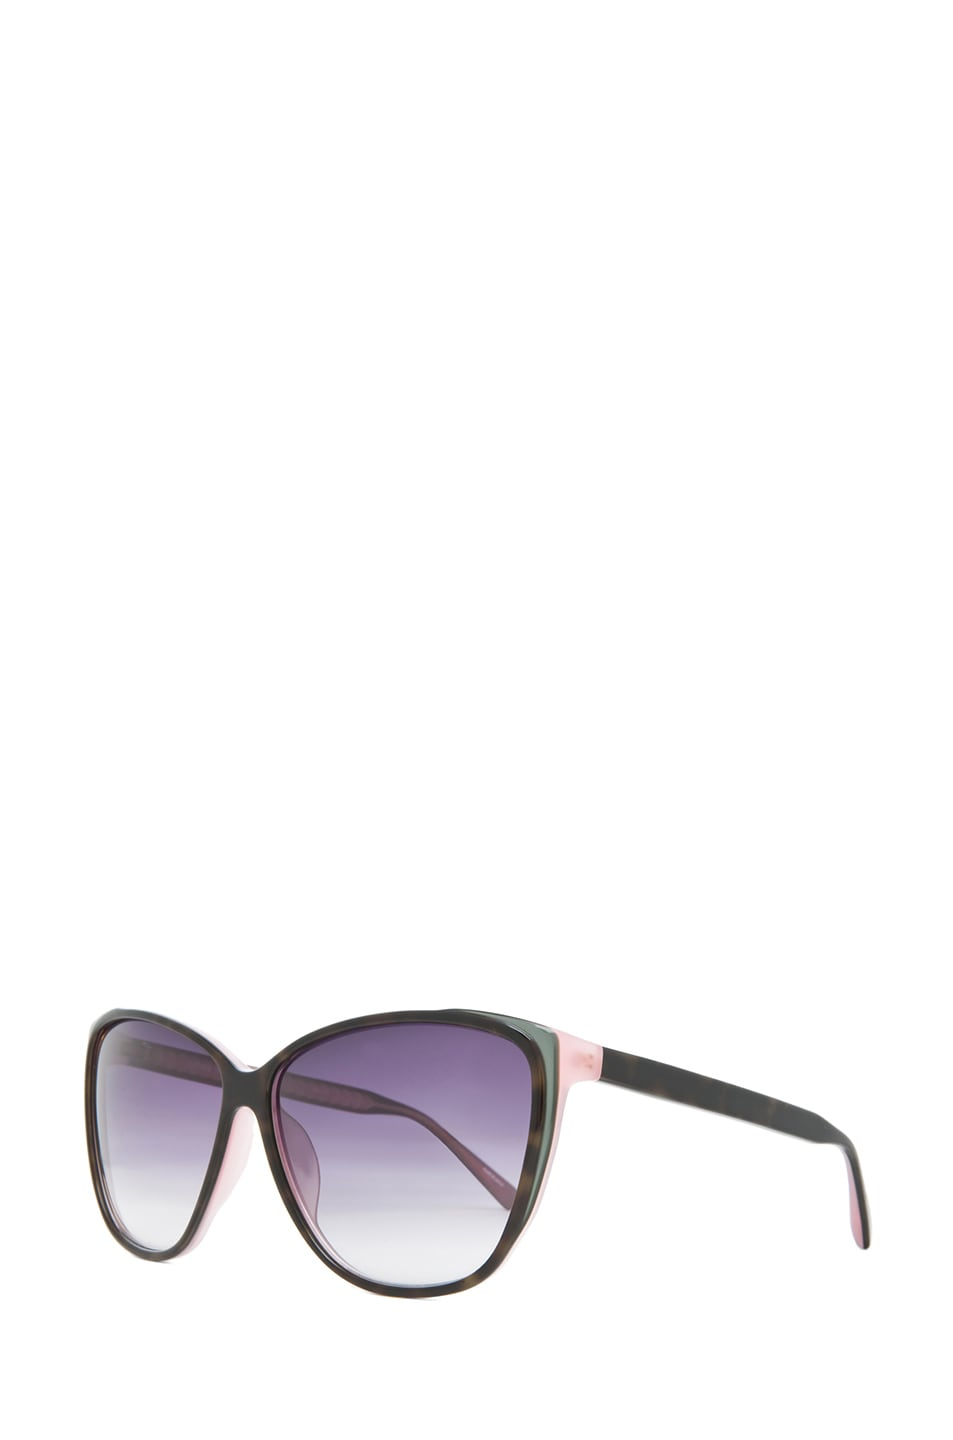 Image 2 of Matthew Williamson Caty Ee Sunglasses in Dusky Purple T Shell